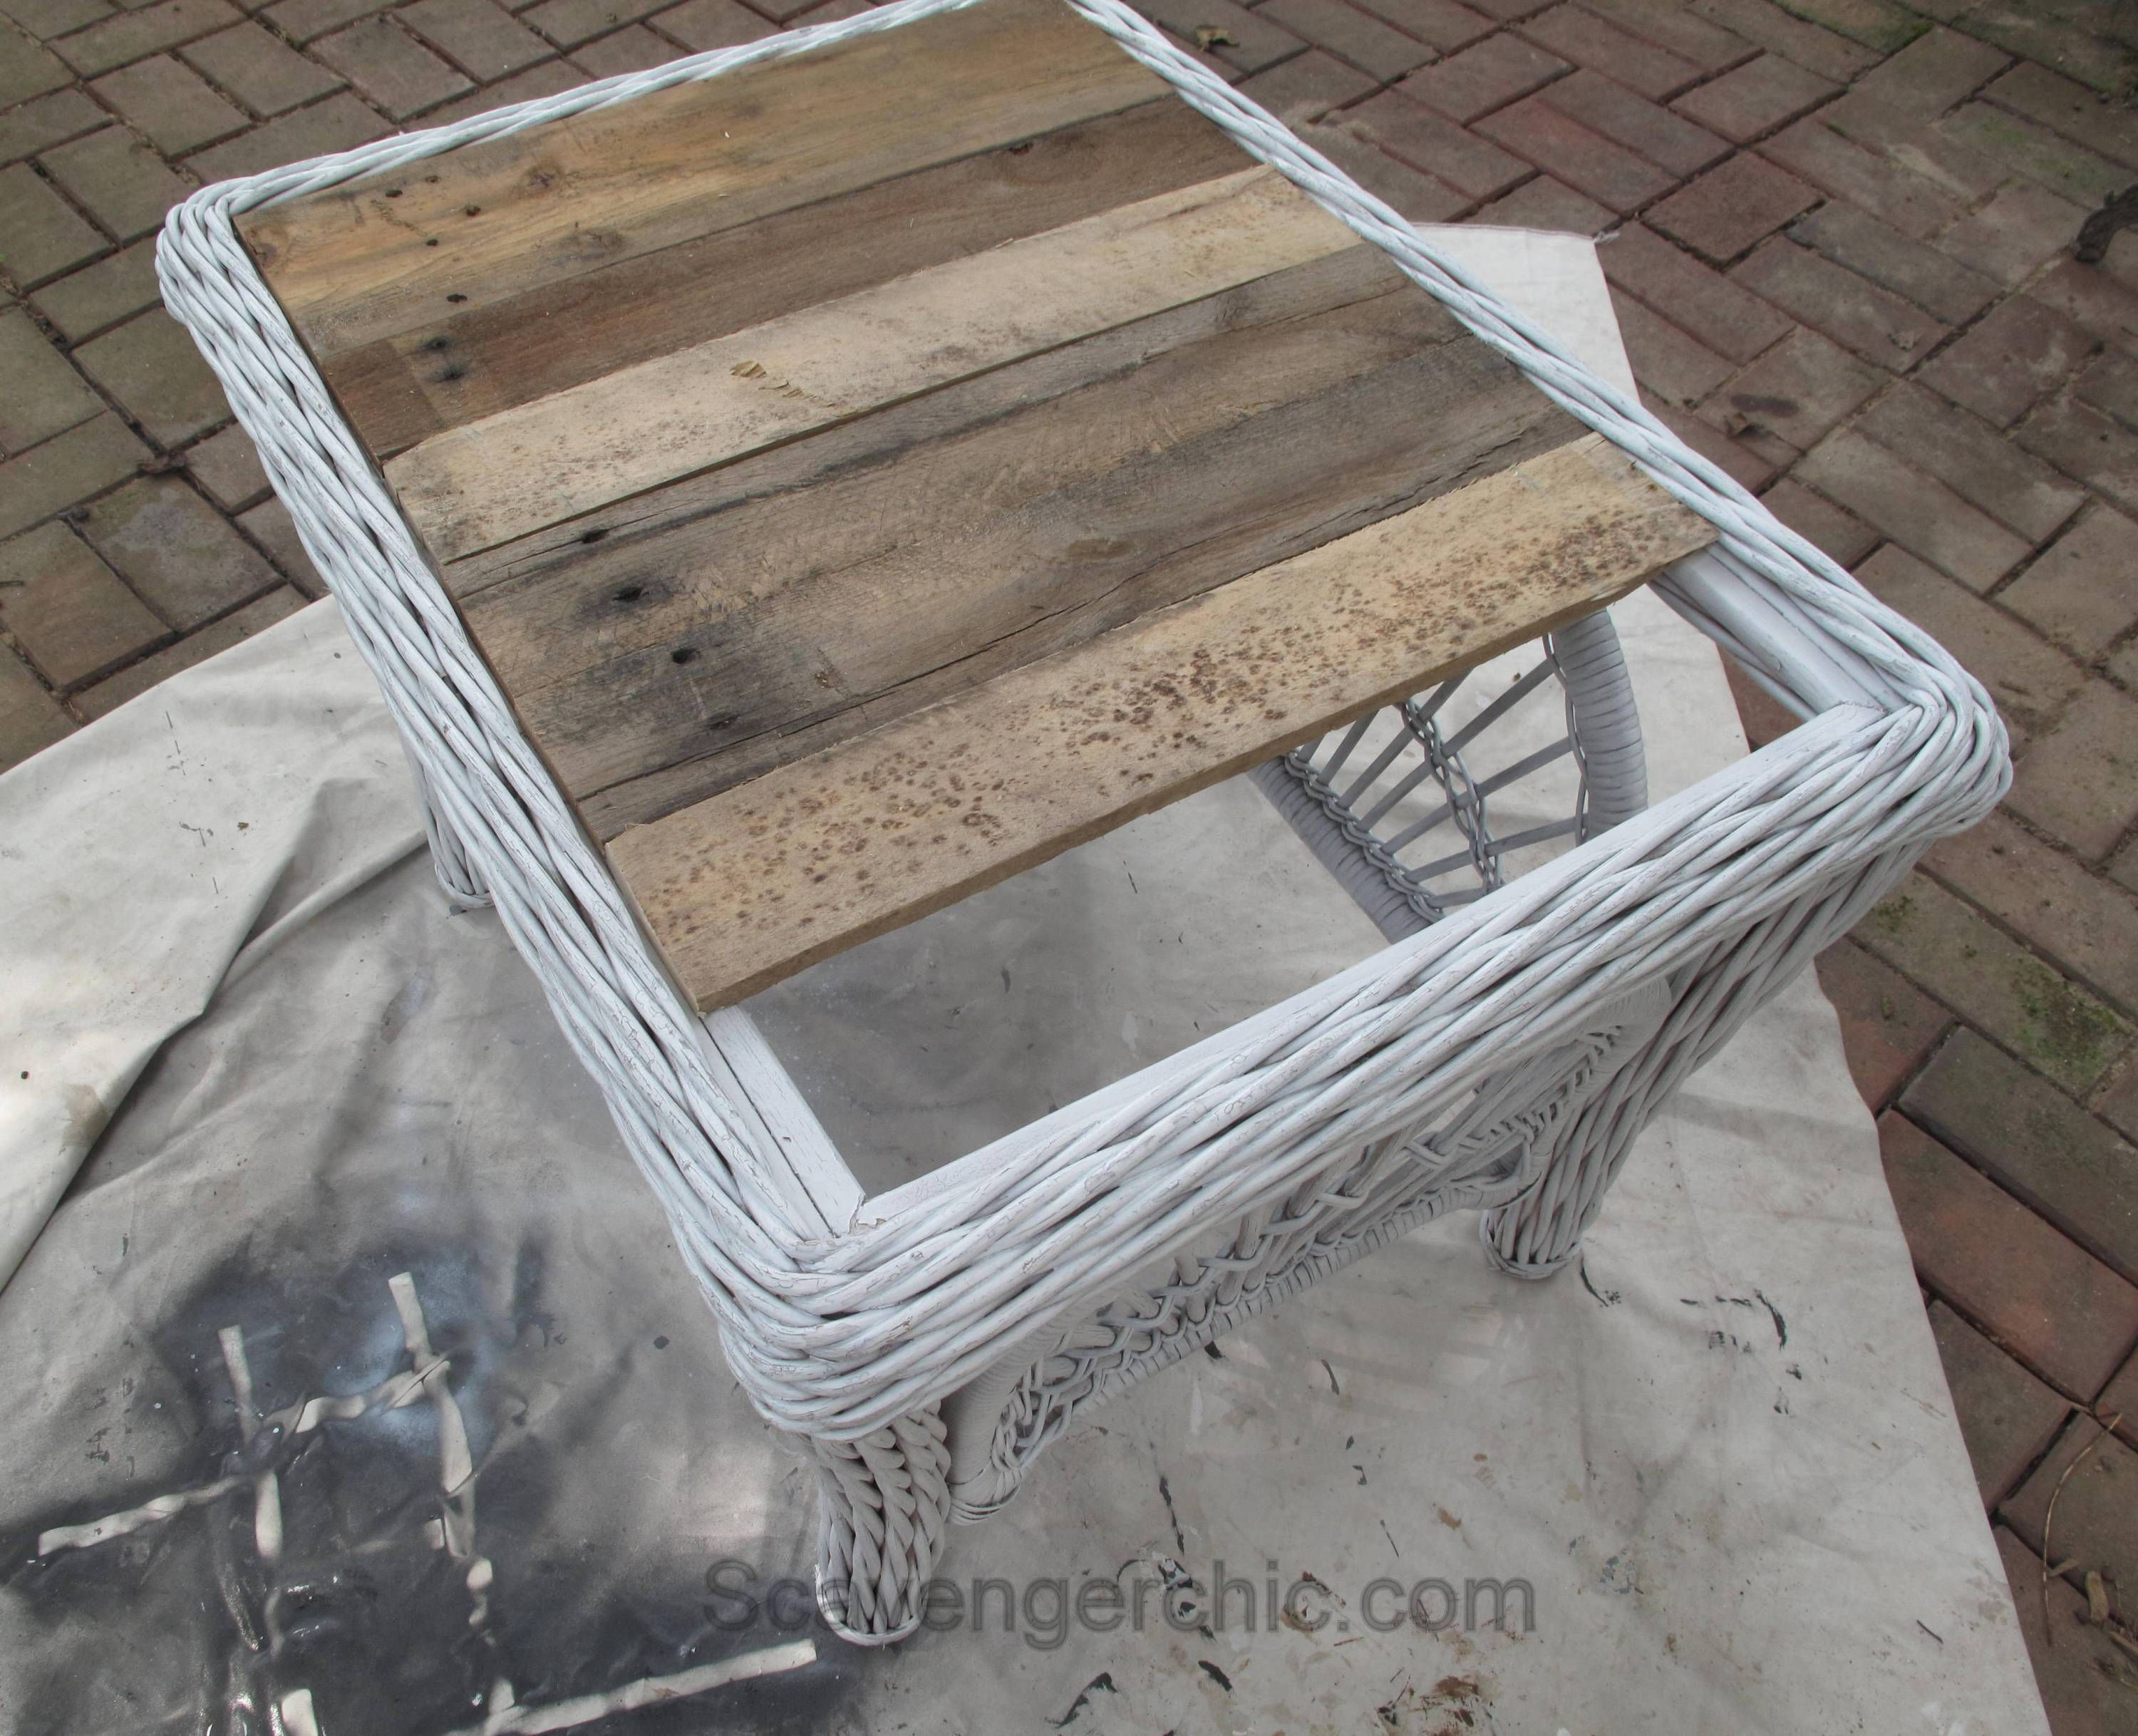 Wicker And Pallet Wood Replacing A Glass Top On A Wicker Table Pallet Furniture Outdoor Painted Outdoor Furniture Wicker Table